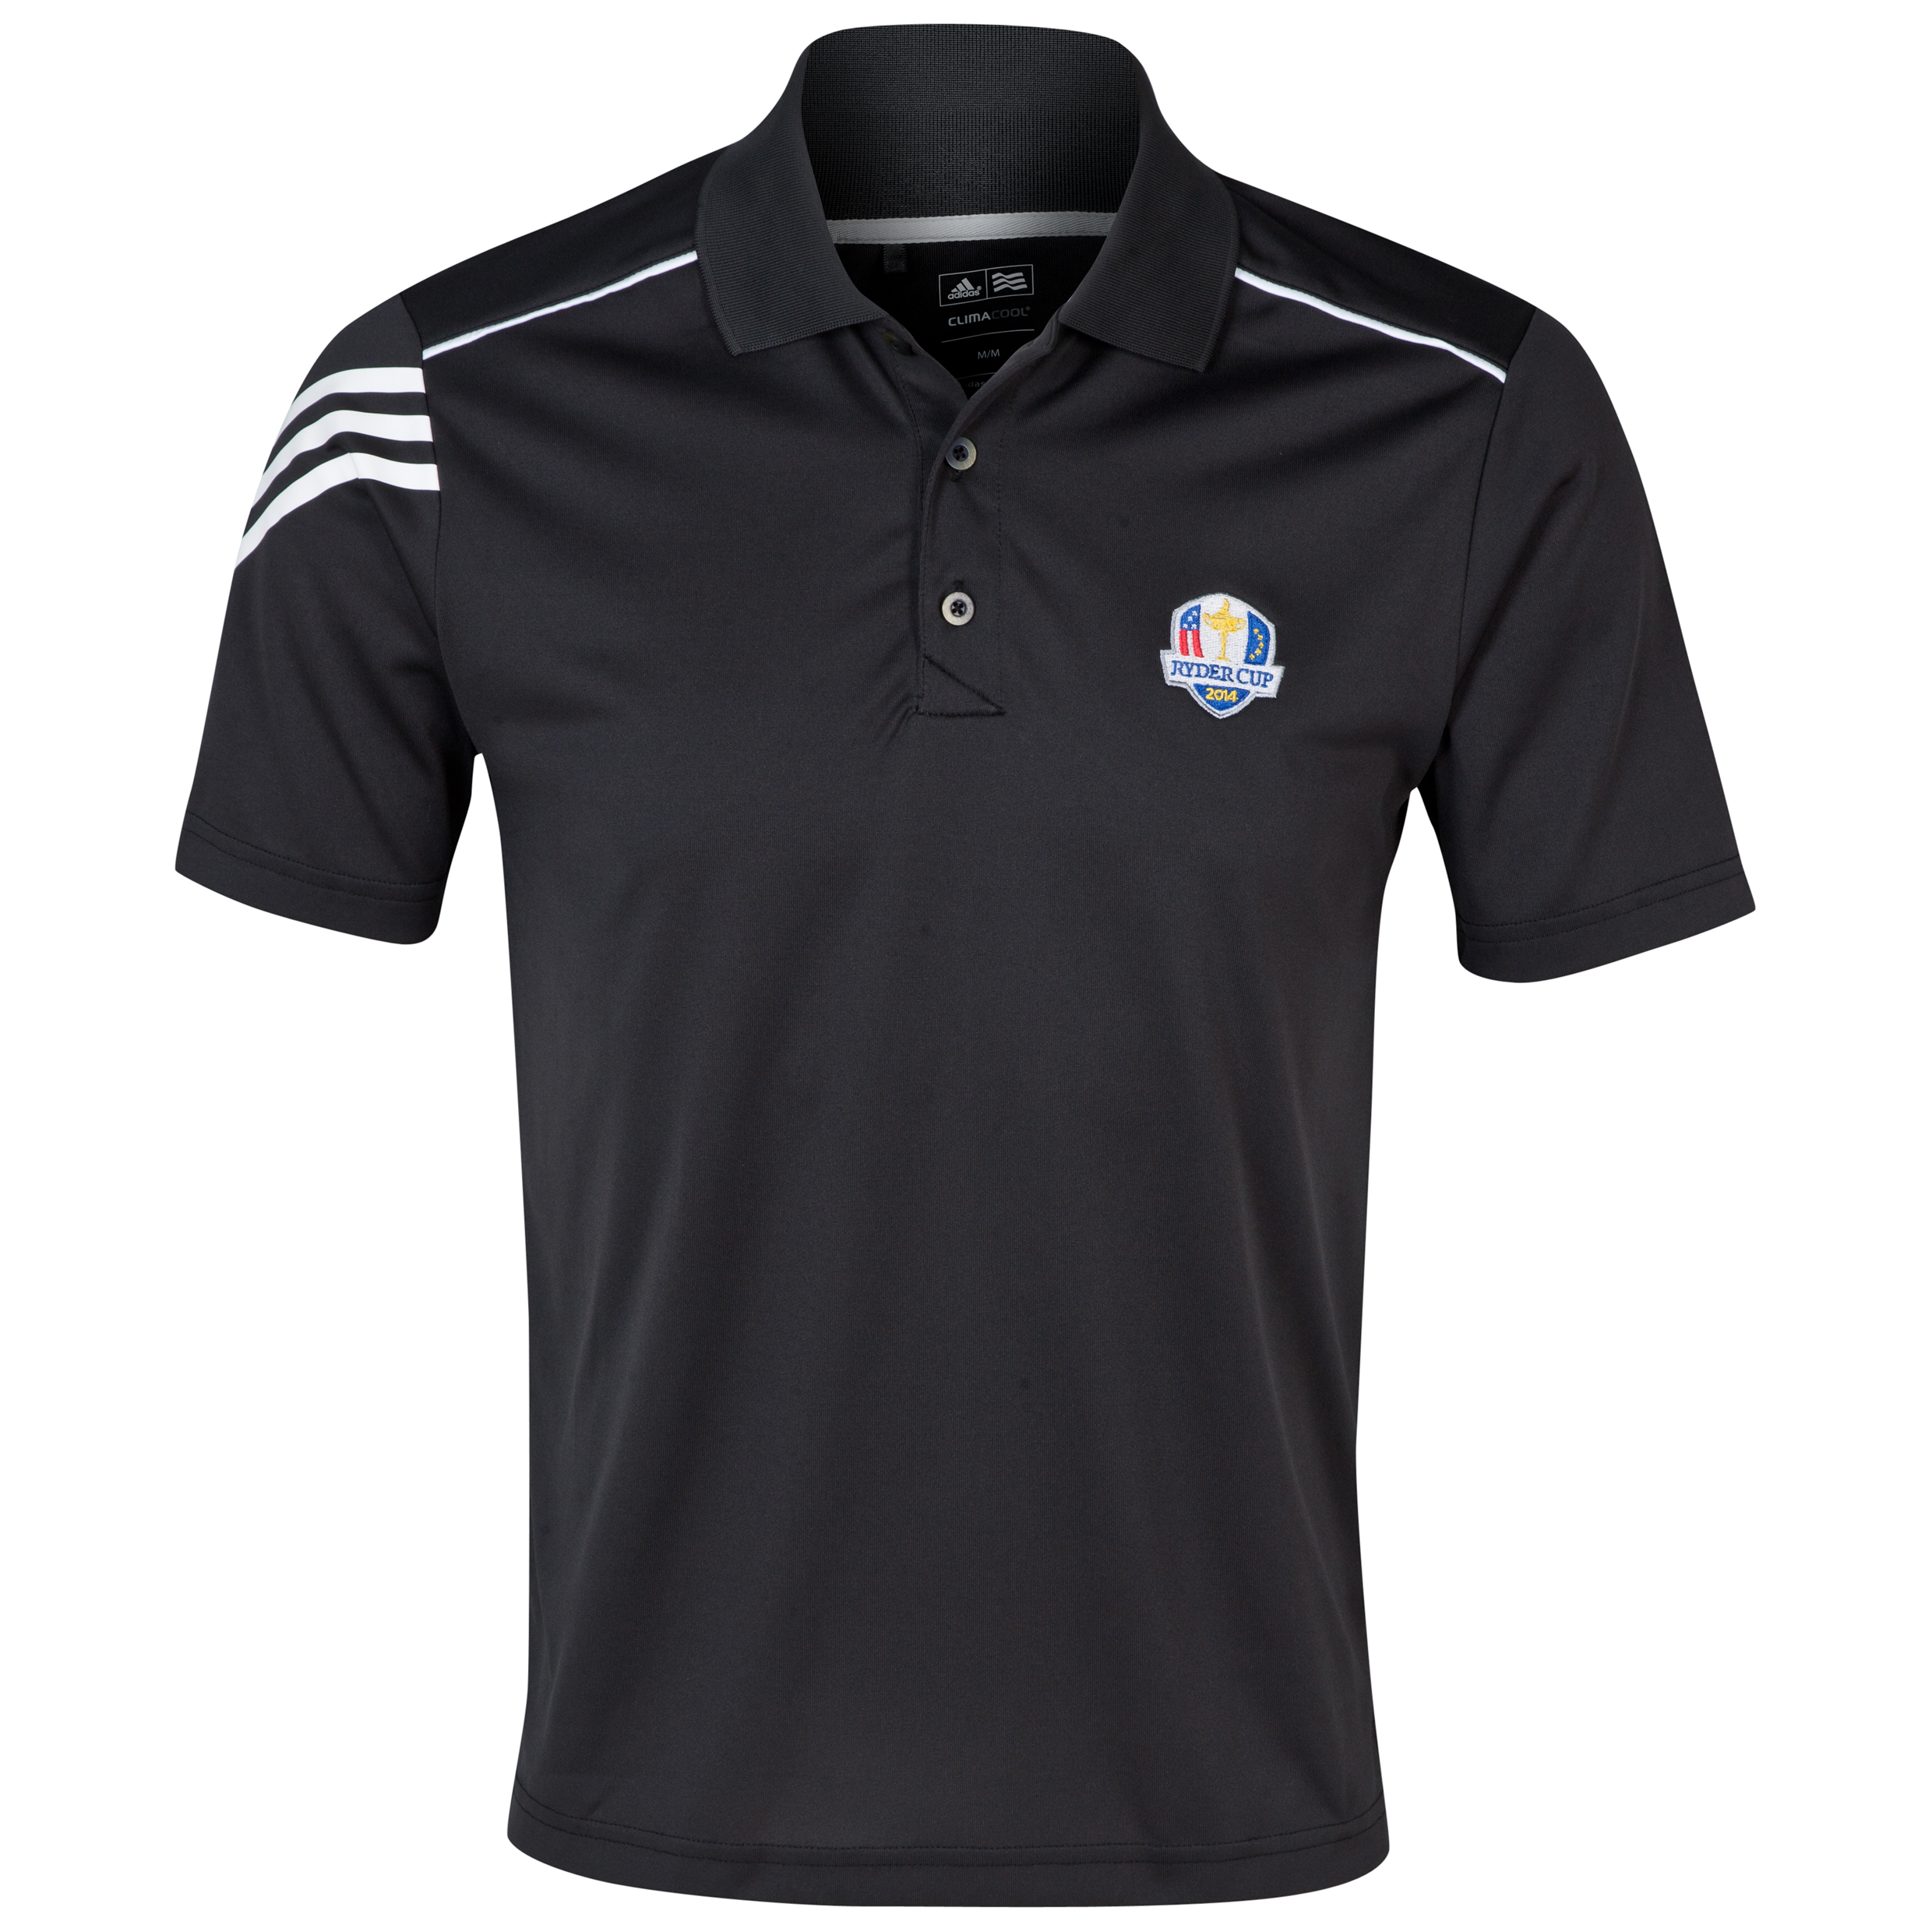 The 2014 Ryder Cup adidas ClimaCool 3-Stripes Polo Black